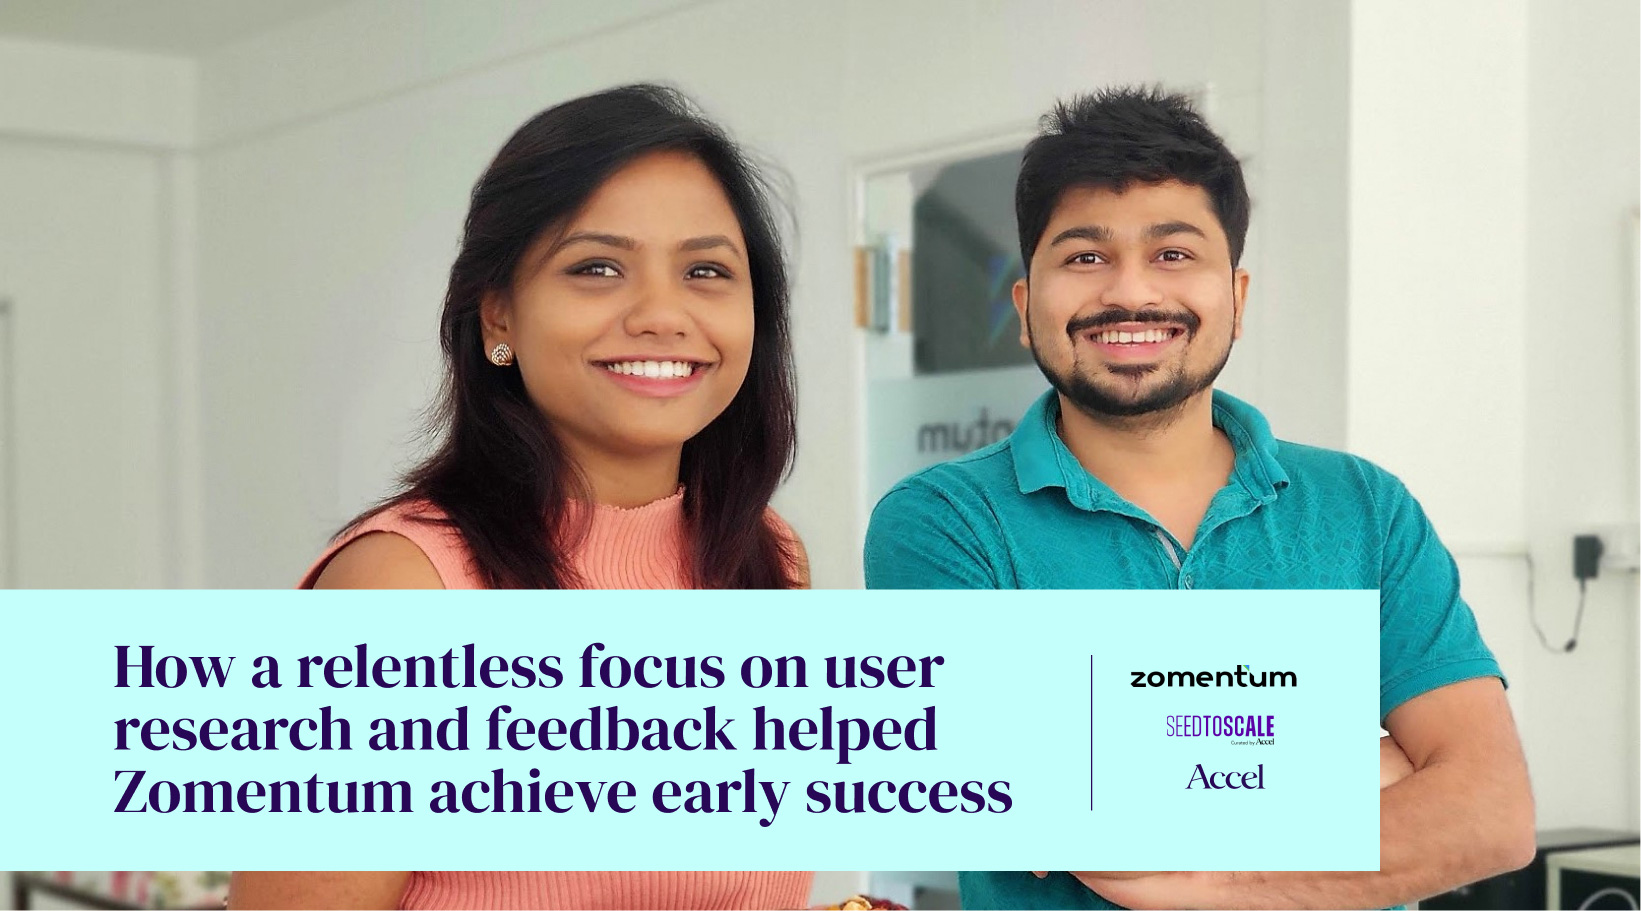 How a relentless focus on user research and feedback helped Zomentum achieve early success